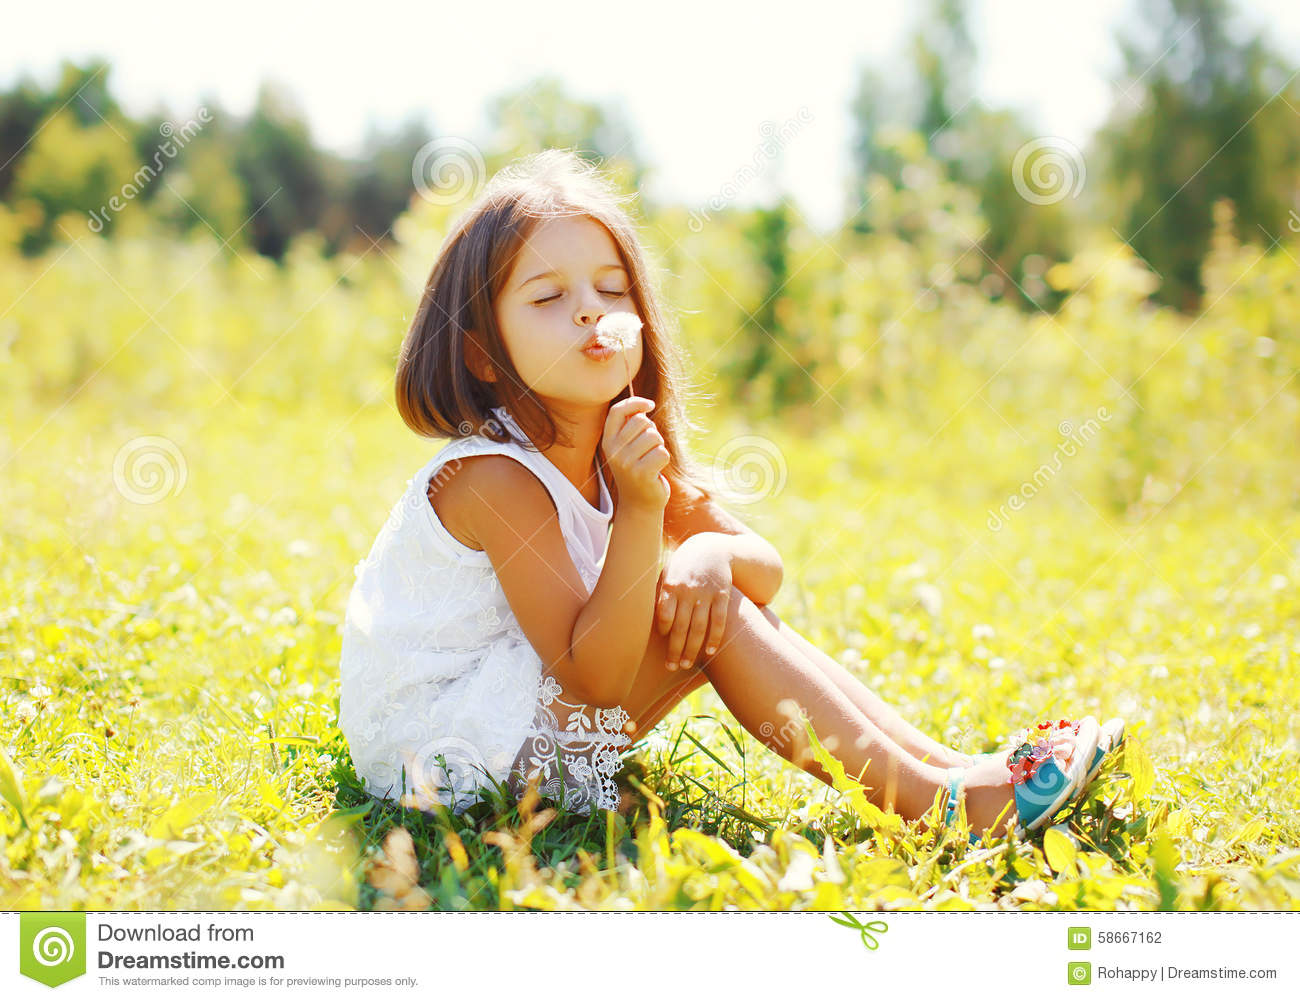 Cute Little Girl Child Blowing Dandelion Flower In Sunny